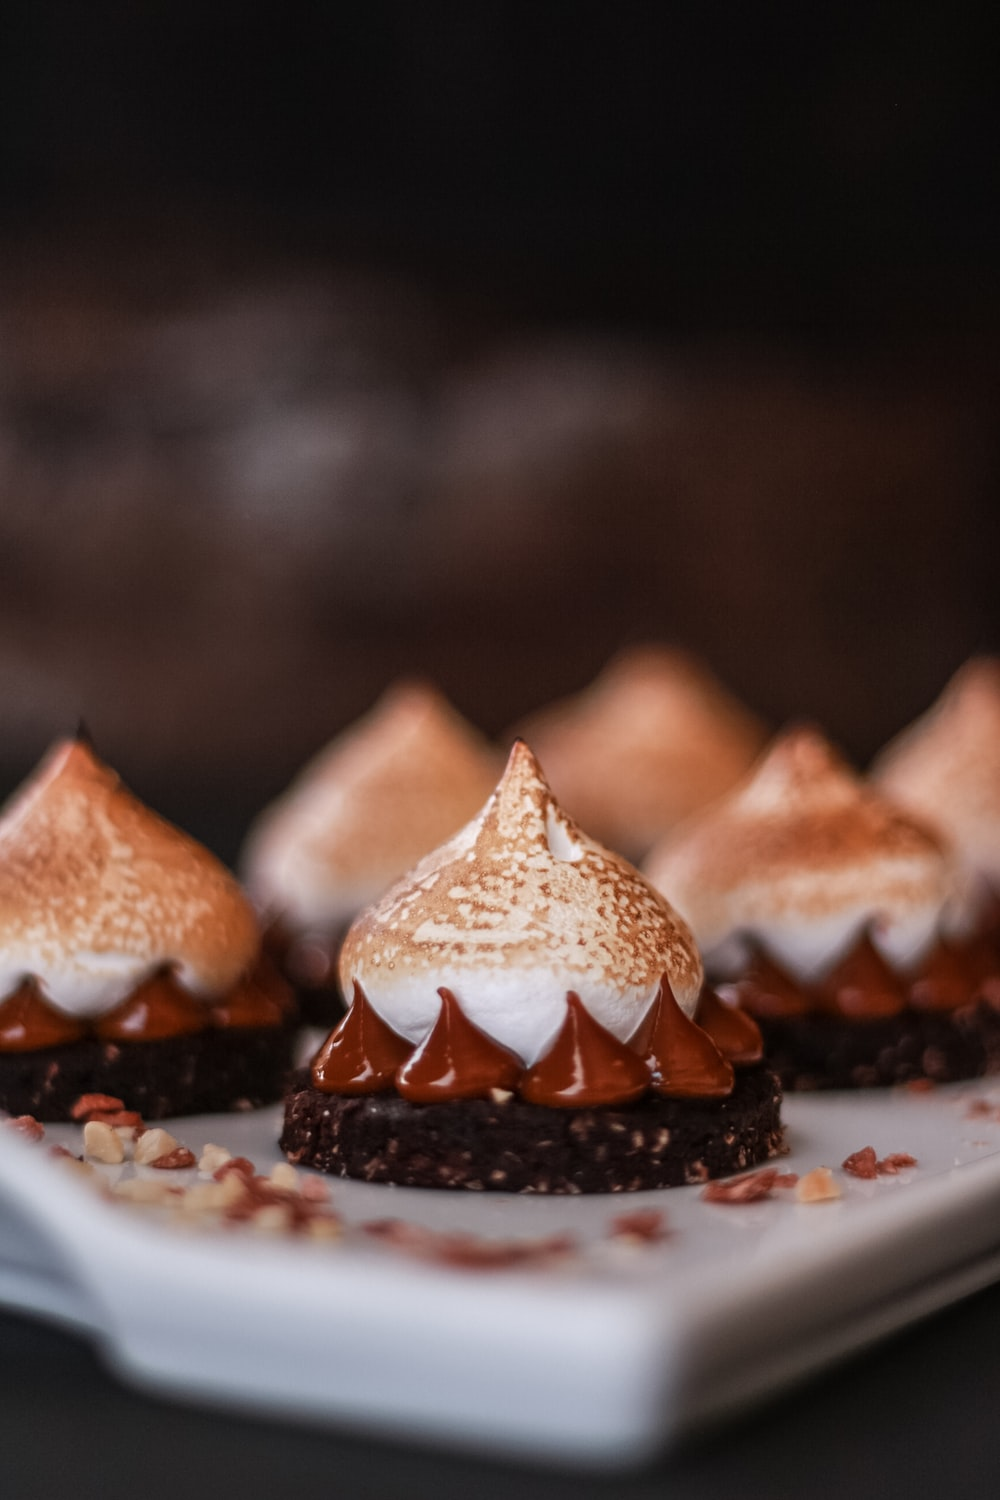 brown and white pastries on white ceramic plate